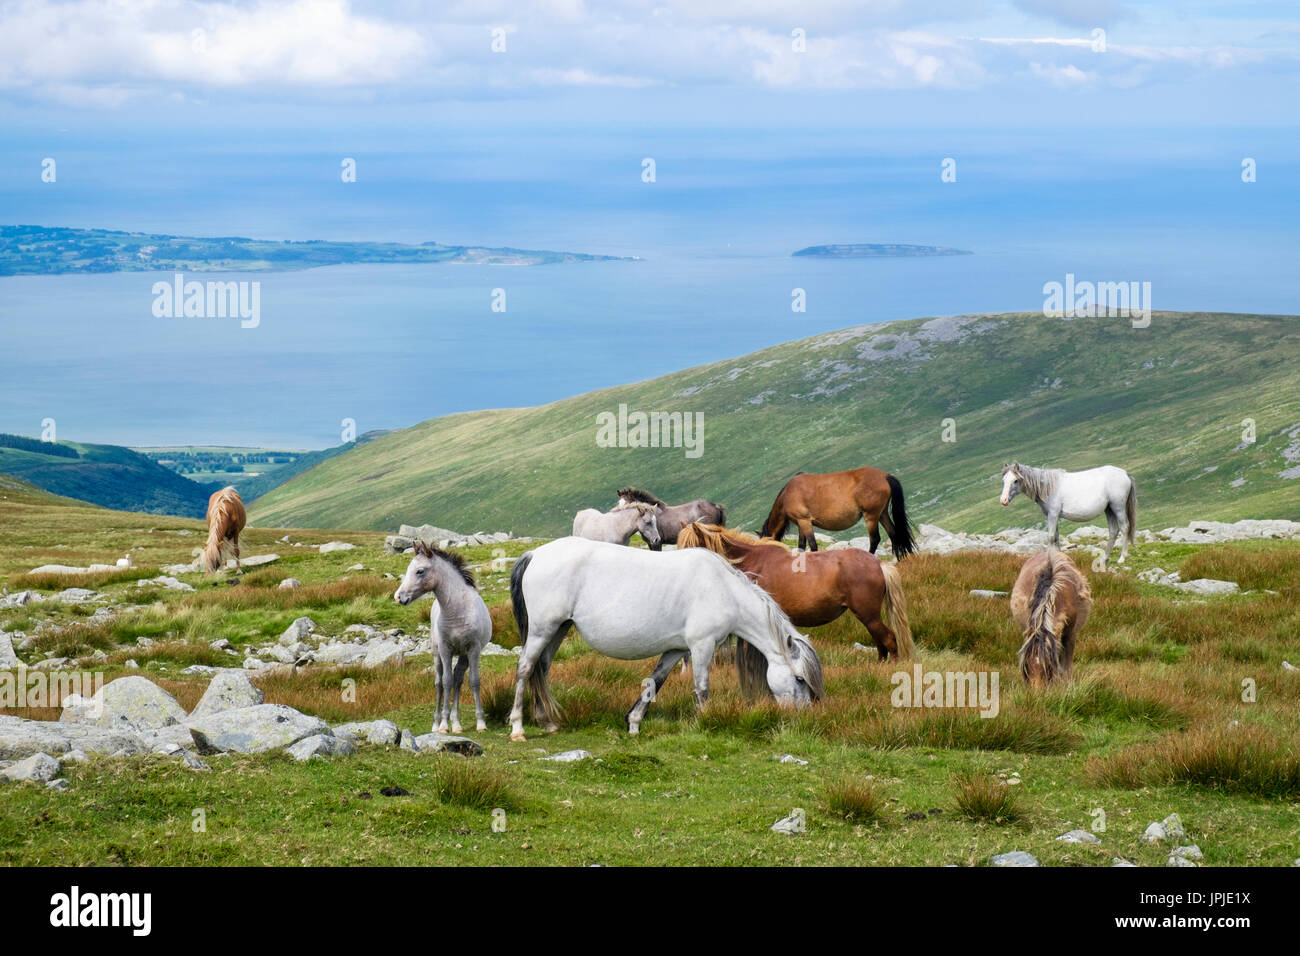 Semi-feral Welsh Mountain Ponies and foals on slopes of Garnedd Gwenllian in Carneddau mountains of Snowdonia National Park above North Wales coast UK - Stock Image